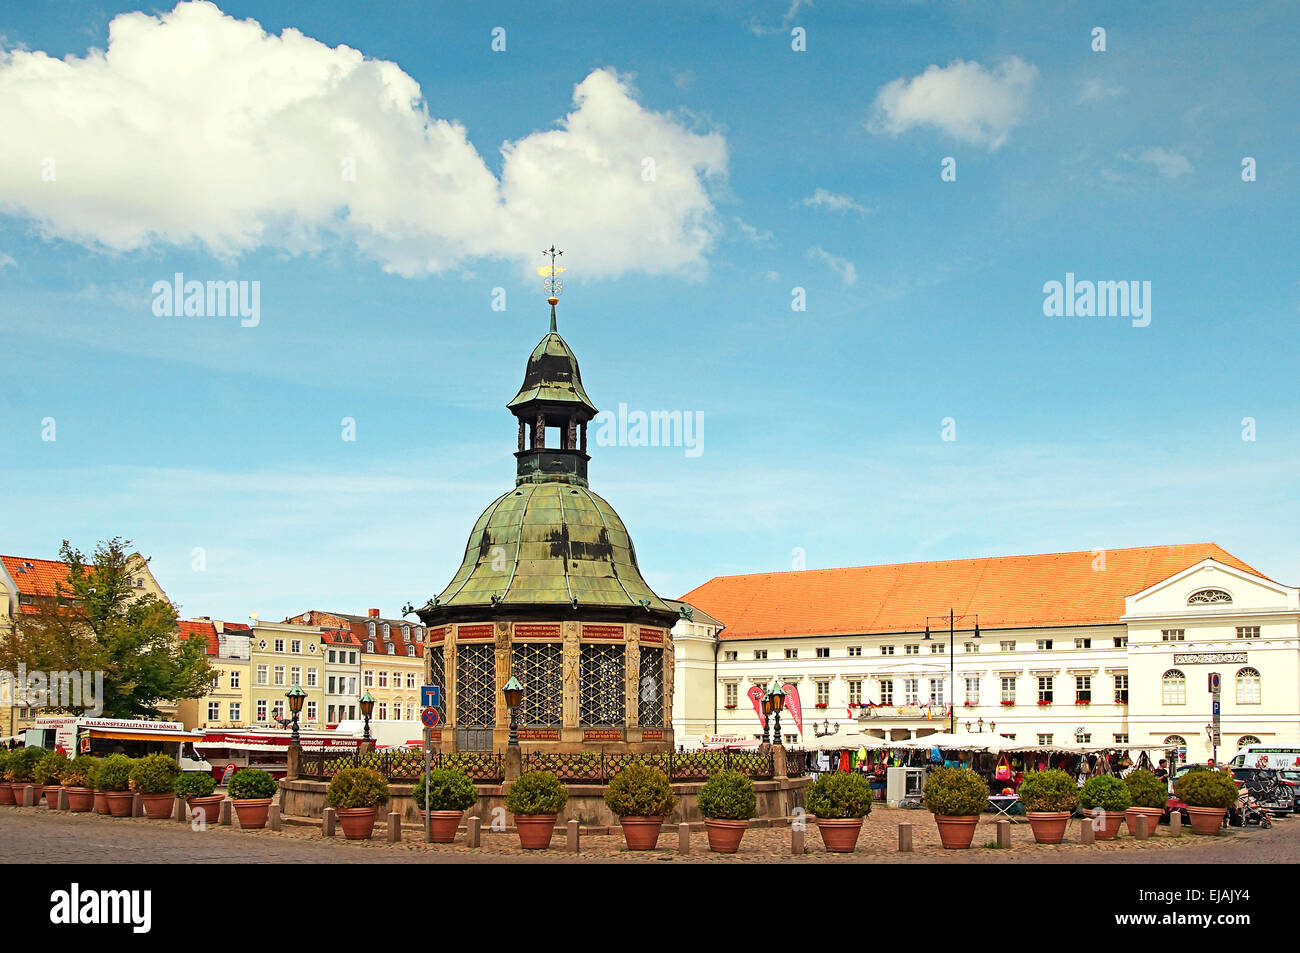 Marketplace Hanseatic City Wismar Germany - Stock Image